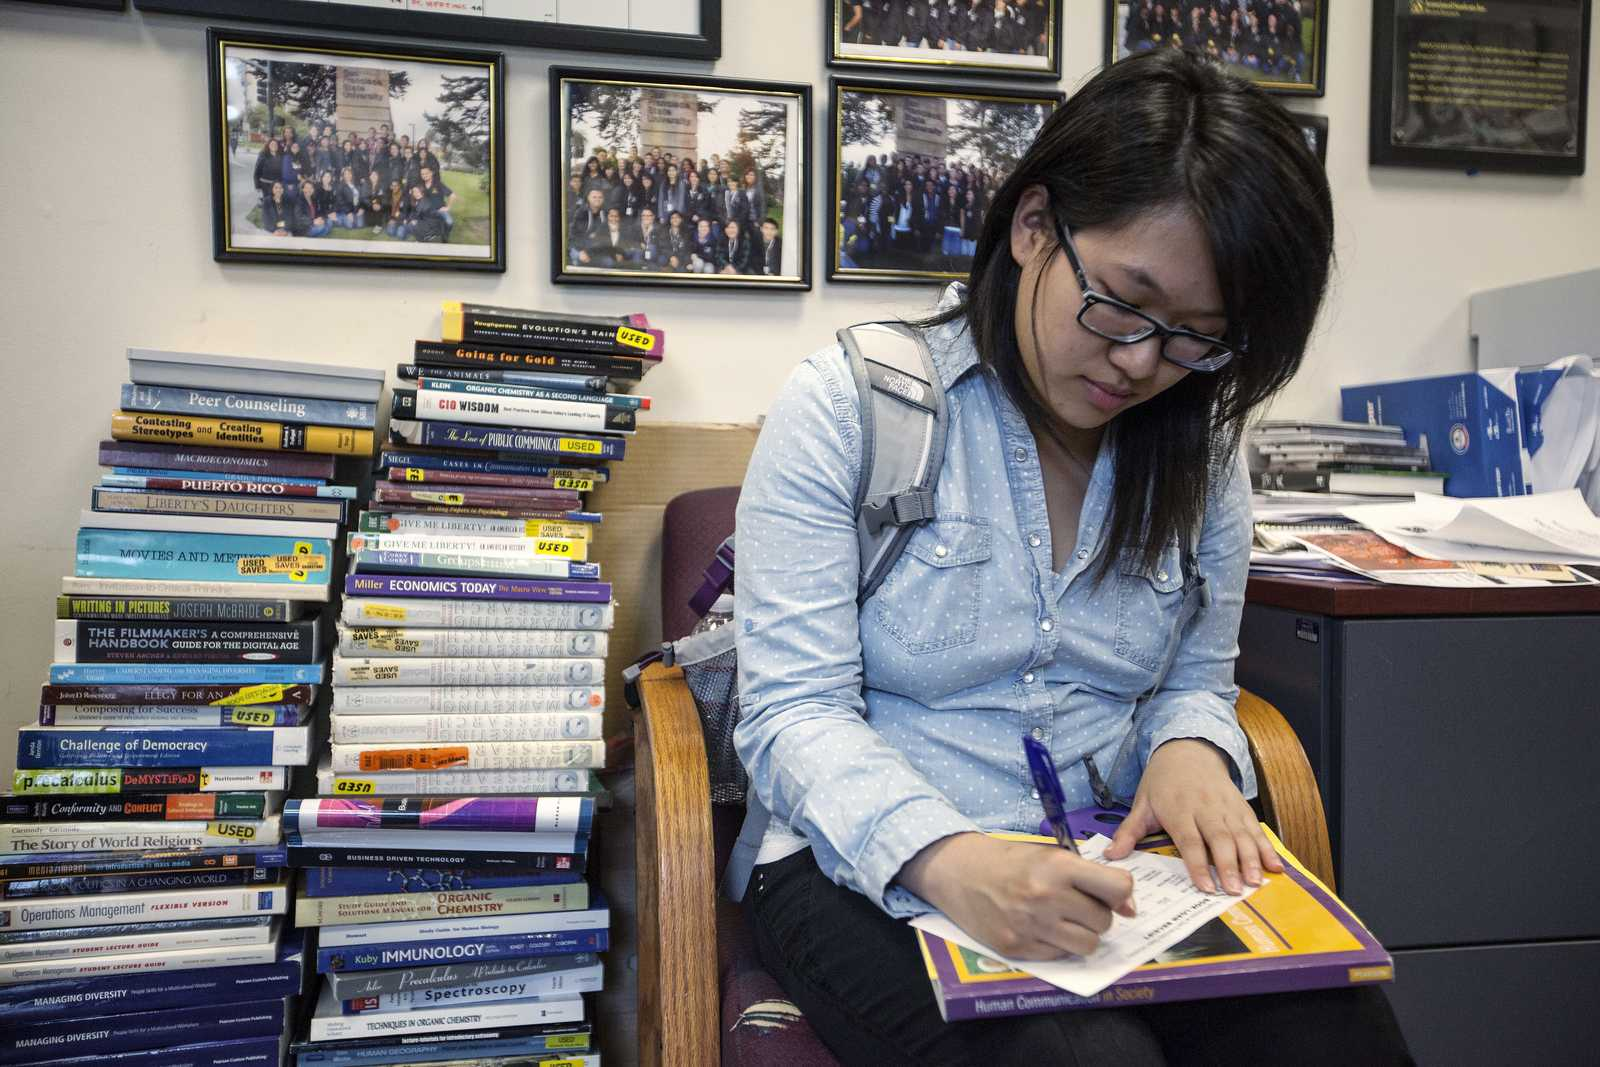 Gigi Huie fills out paperwork to receive her book through the Project Connect book loan program on Tuesday, Sept. 3 in the Project Connect office in the Cesar Chavez Student Center. Photo by Dariel Medina / Xpress